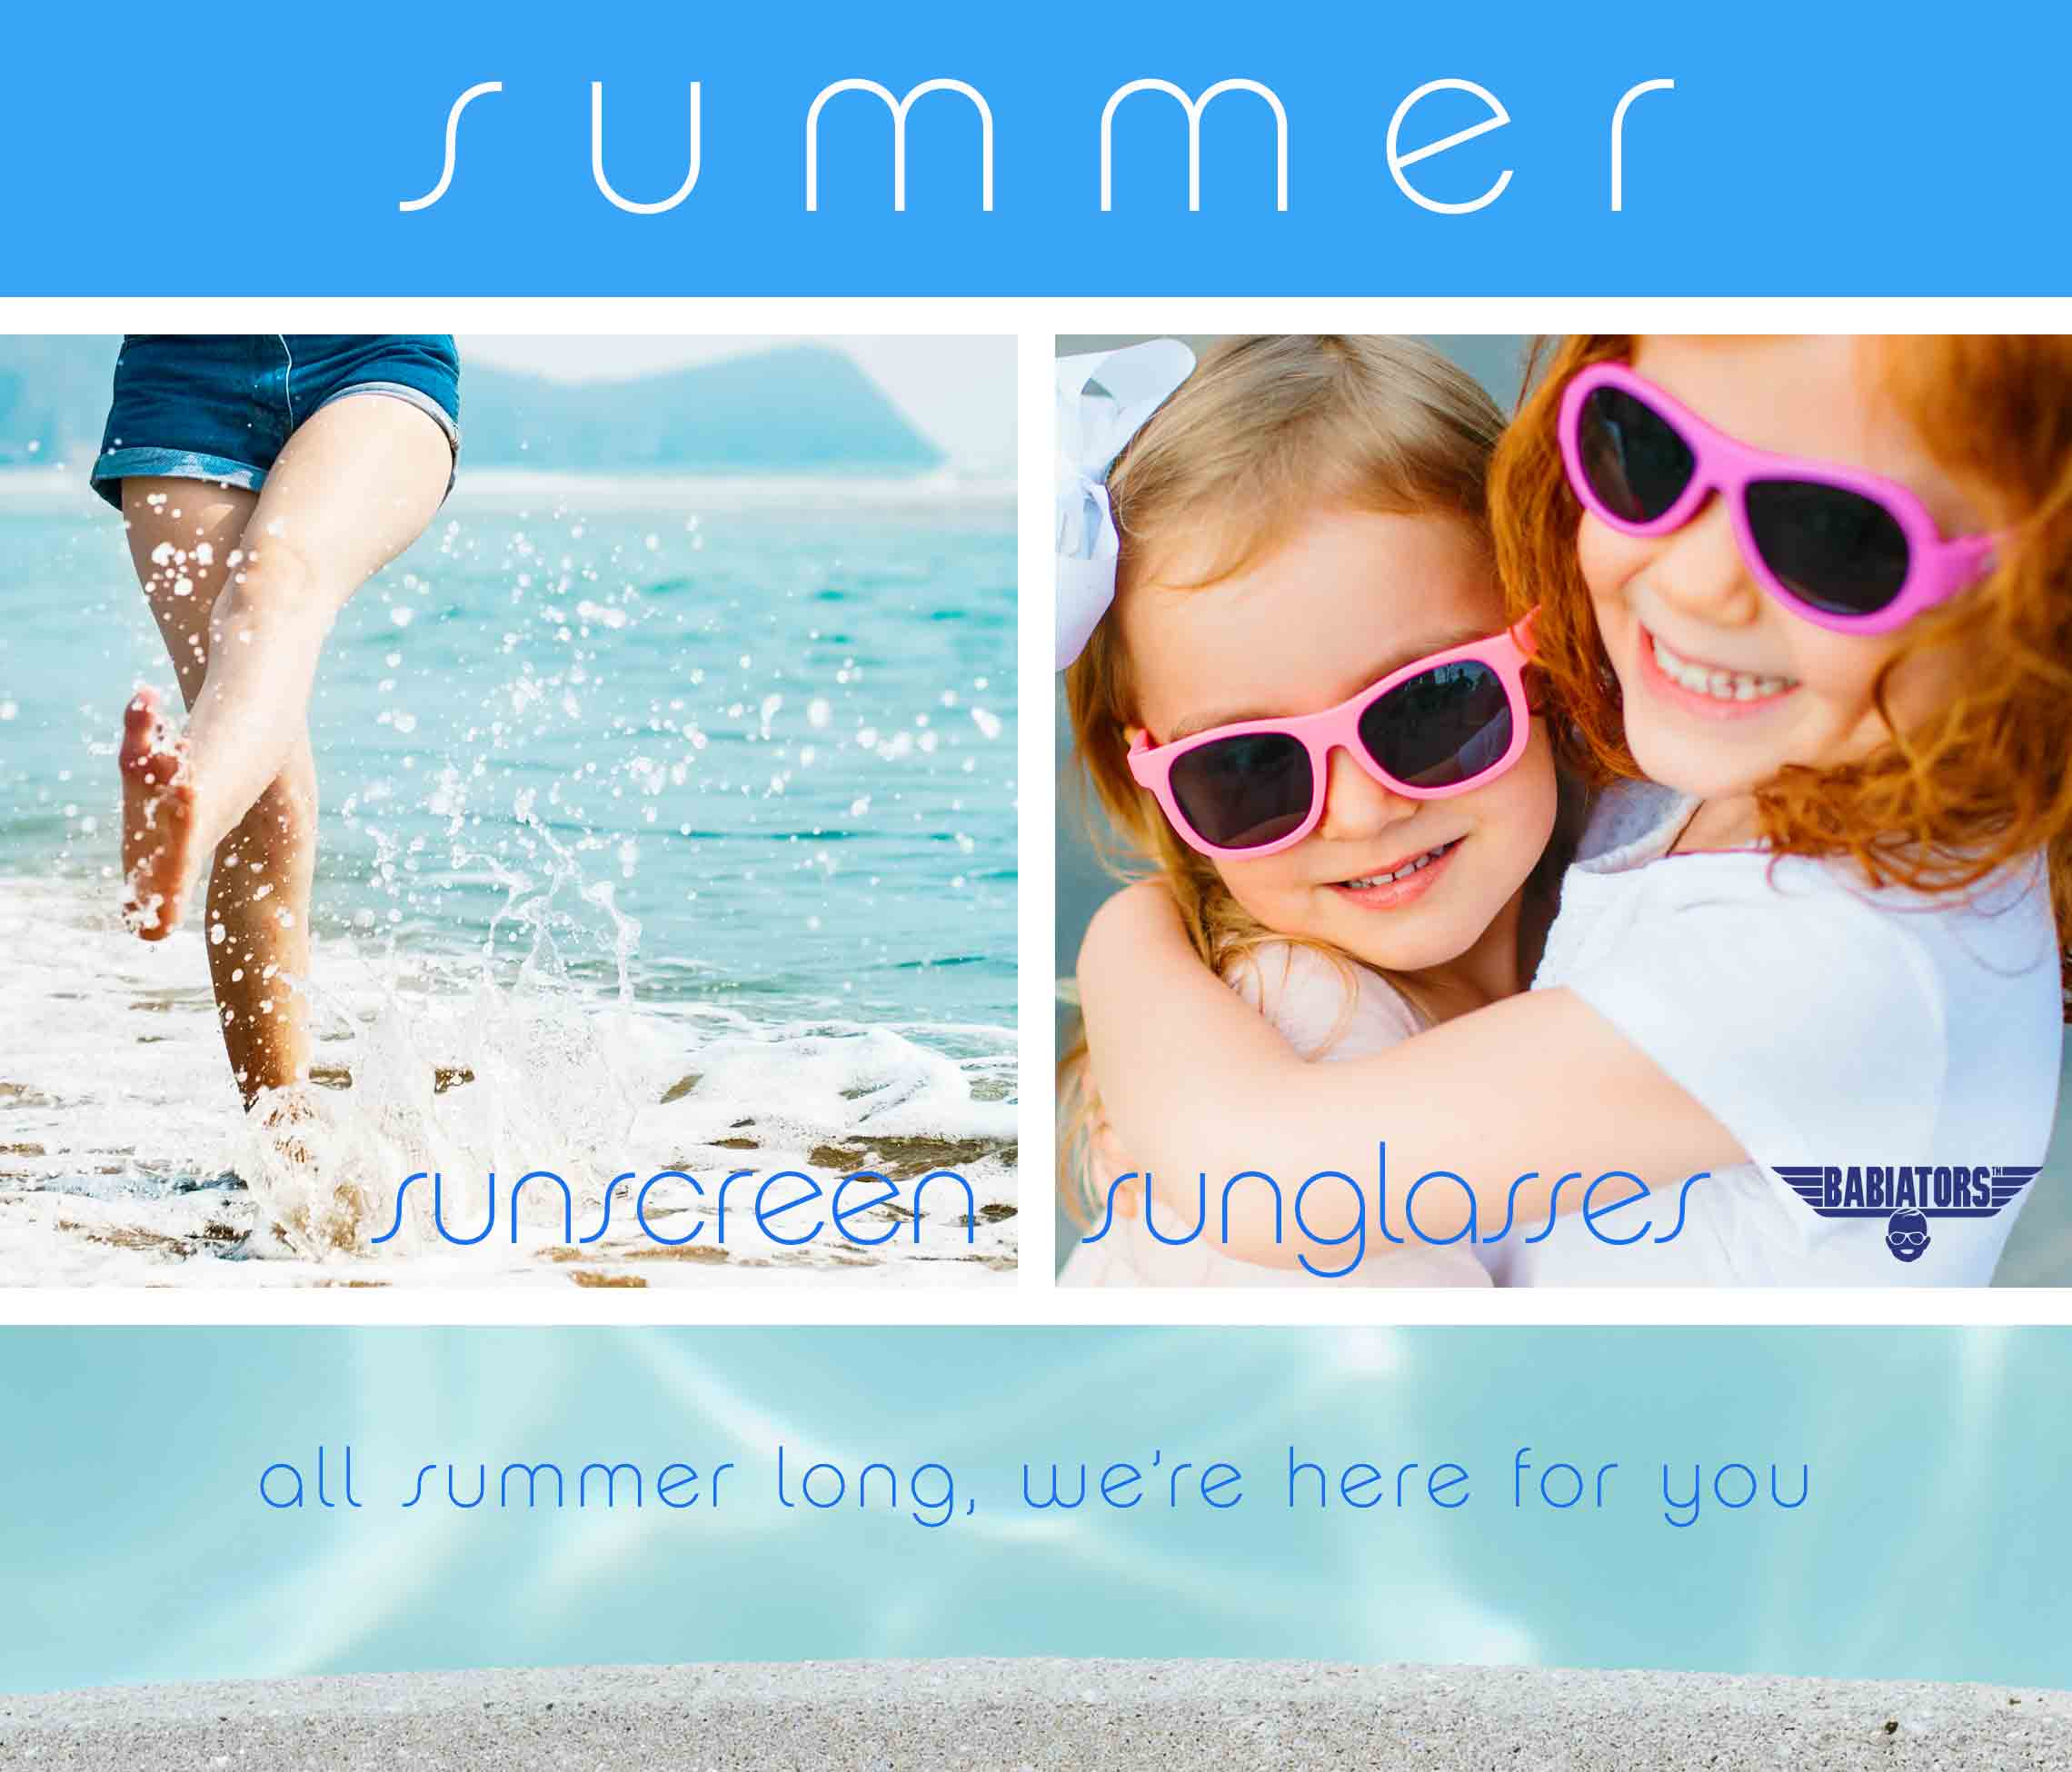 Summer - sunscreen - sunglasses for kids by Babiators - all summer long we're here for you